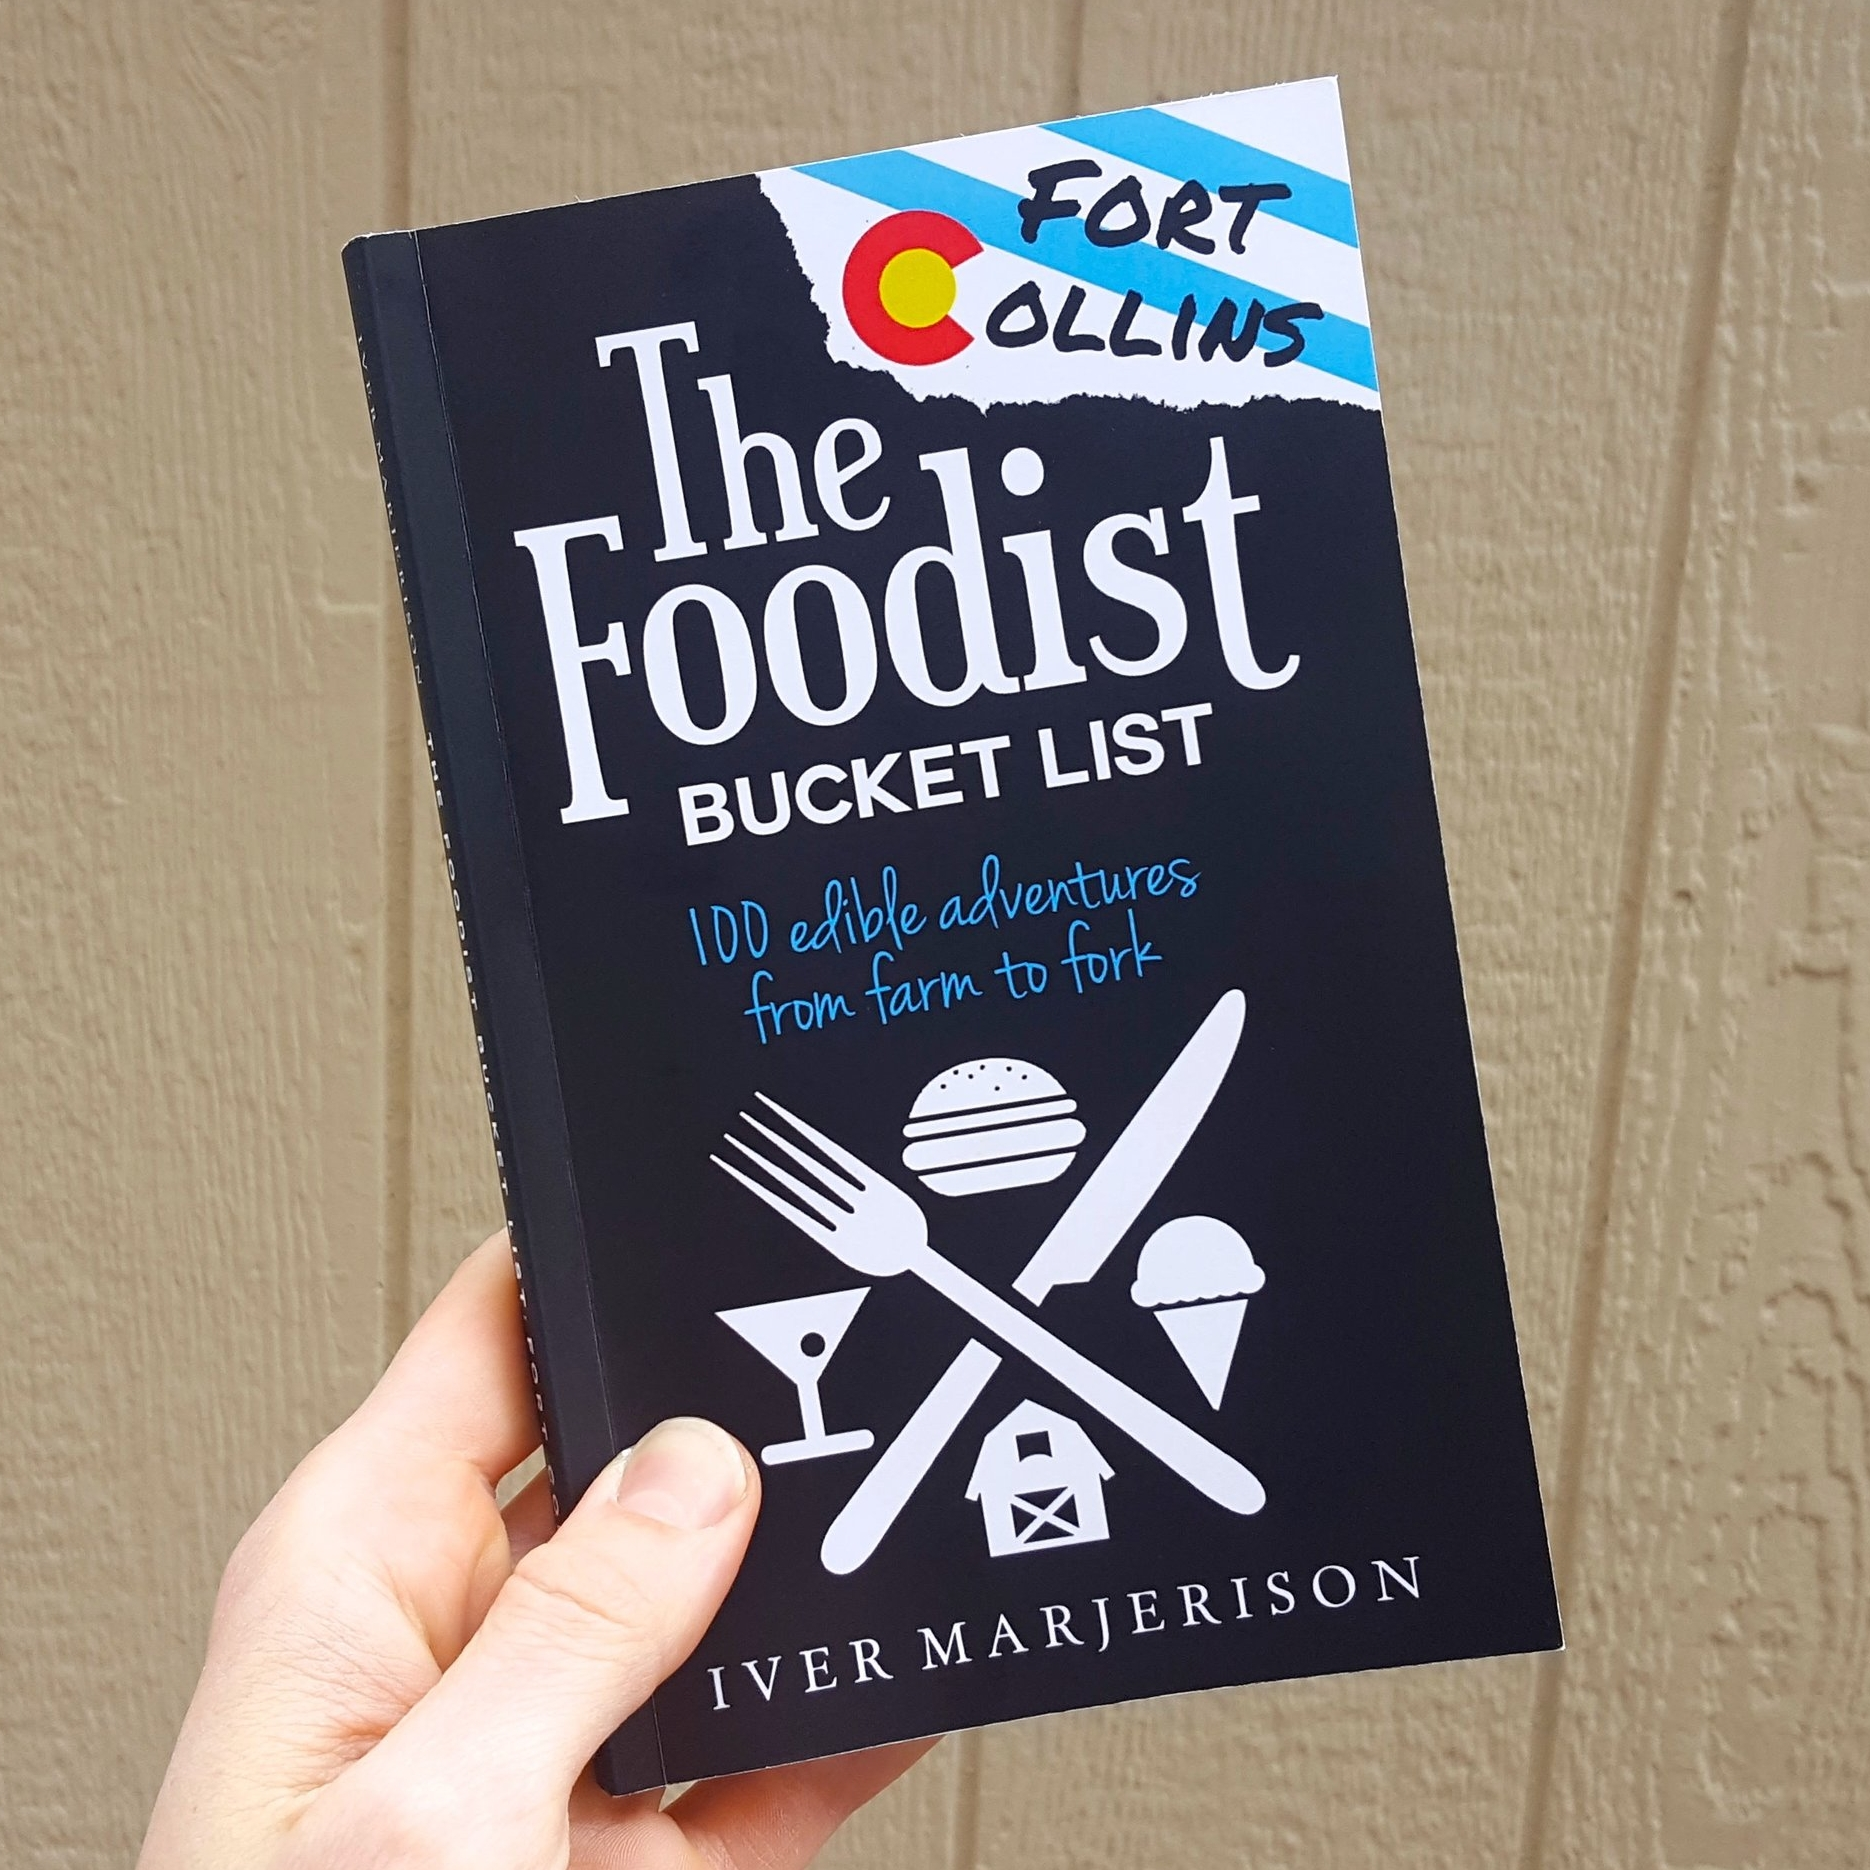 Fort Collins, CO - Food Guidebook